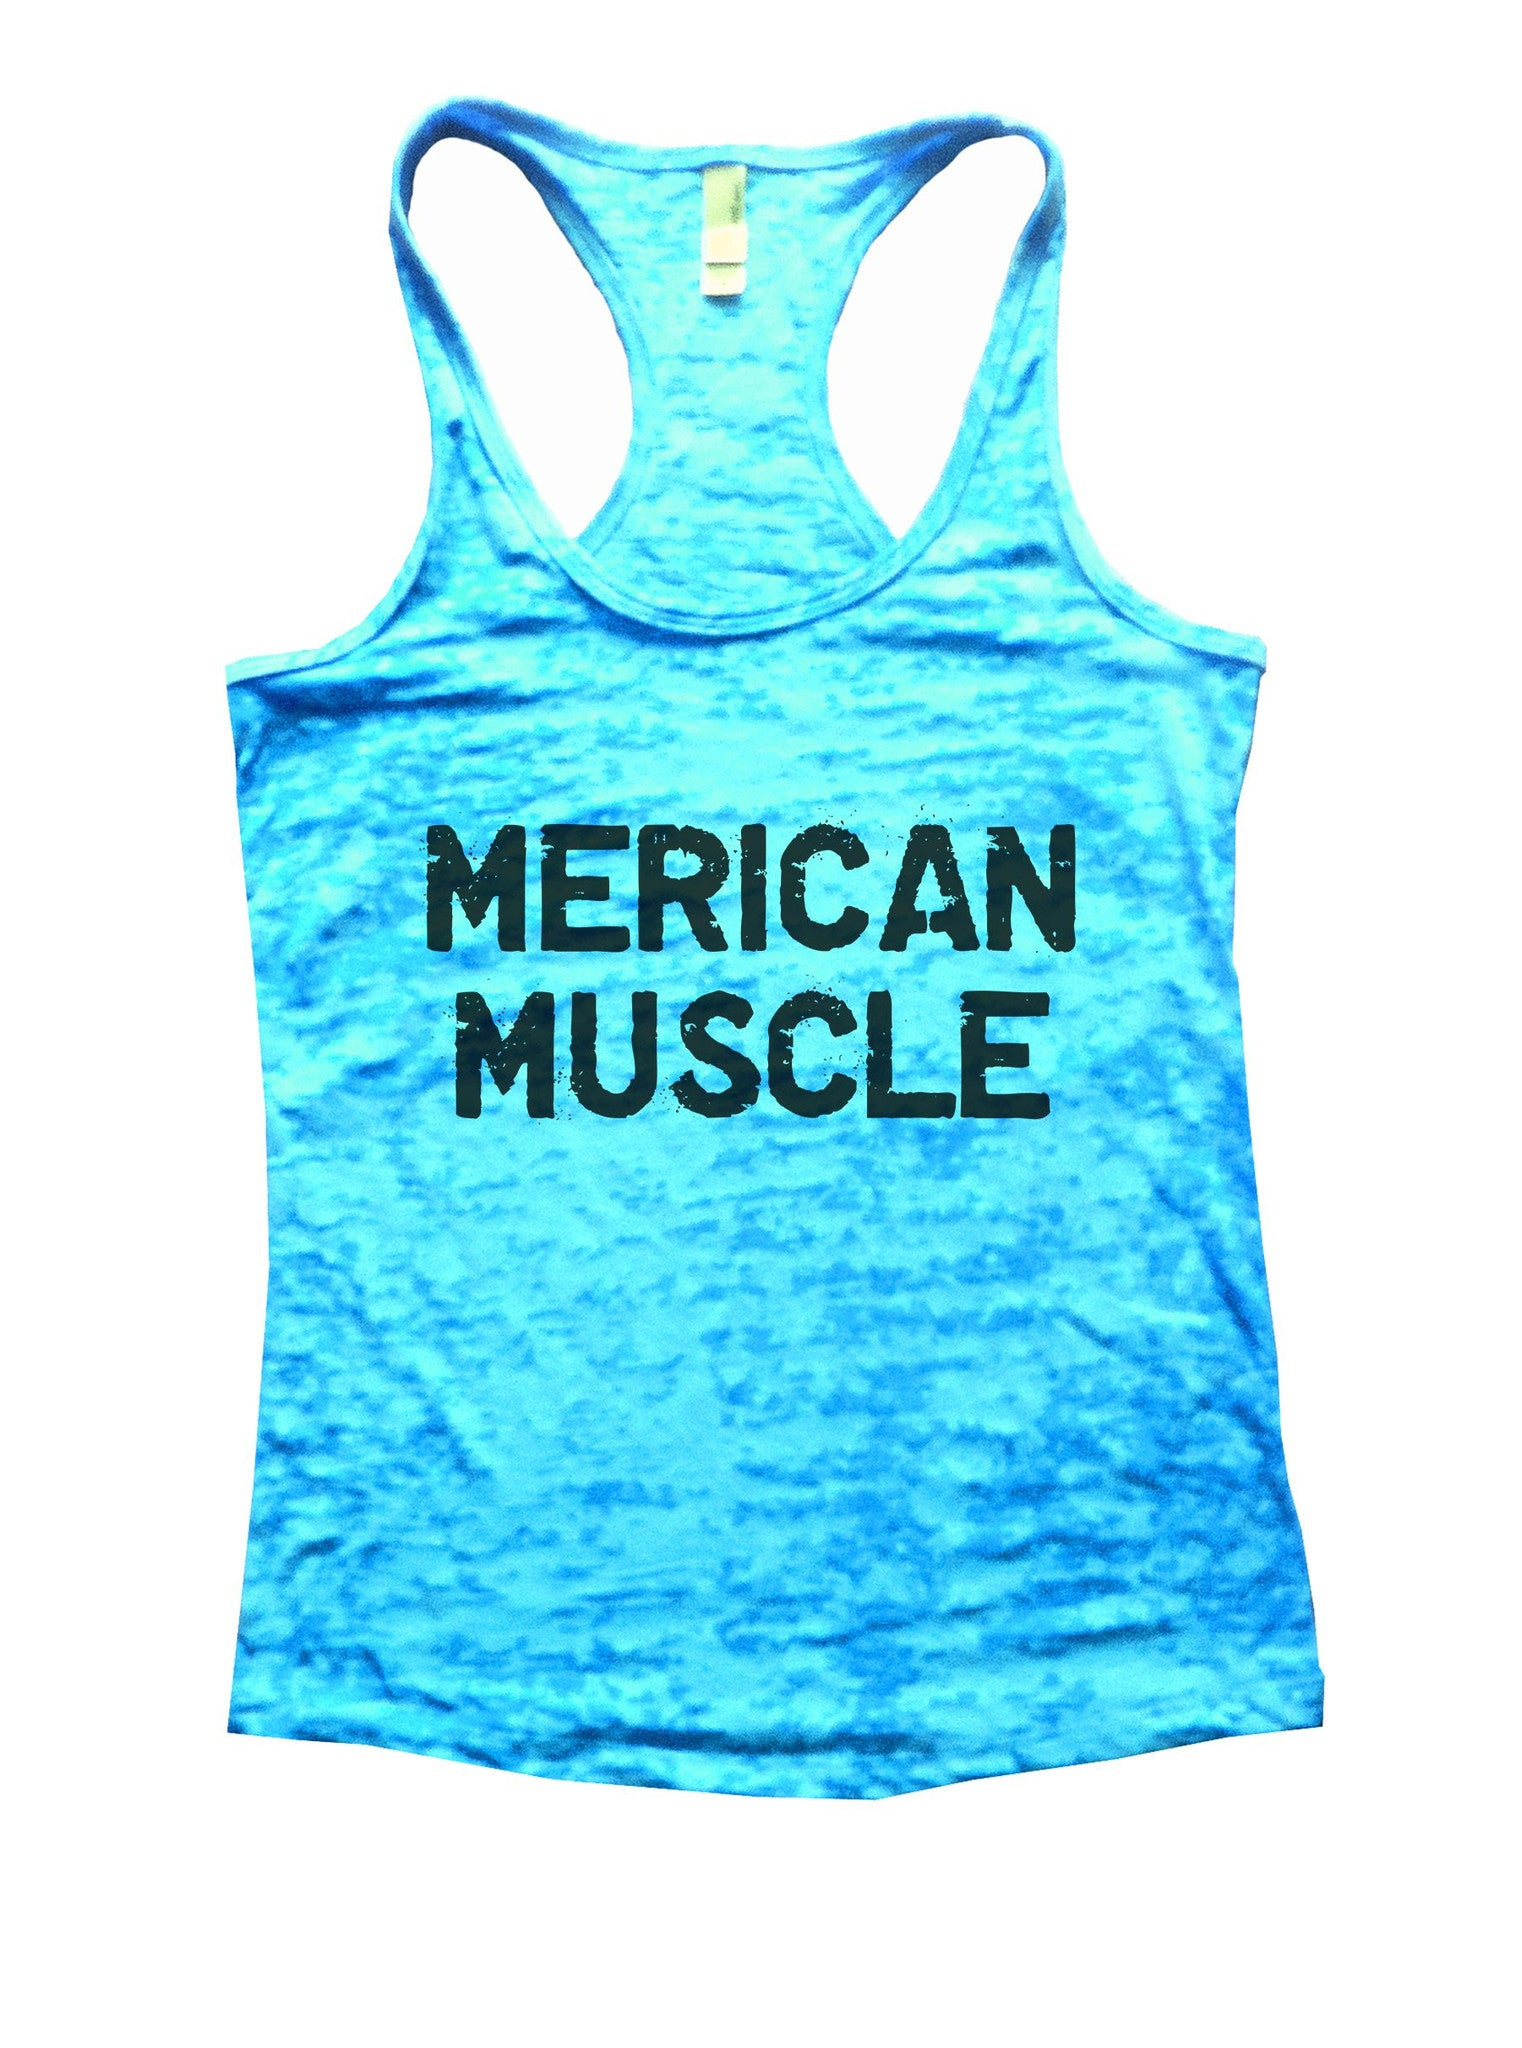 Merican Muscle Burnout Tank Top By BurnoutTankTops.com - 1022 - Funny Shirts Tank Tops Burnouts and Triblends  - 4